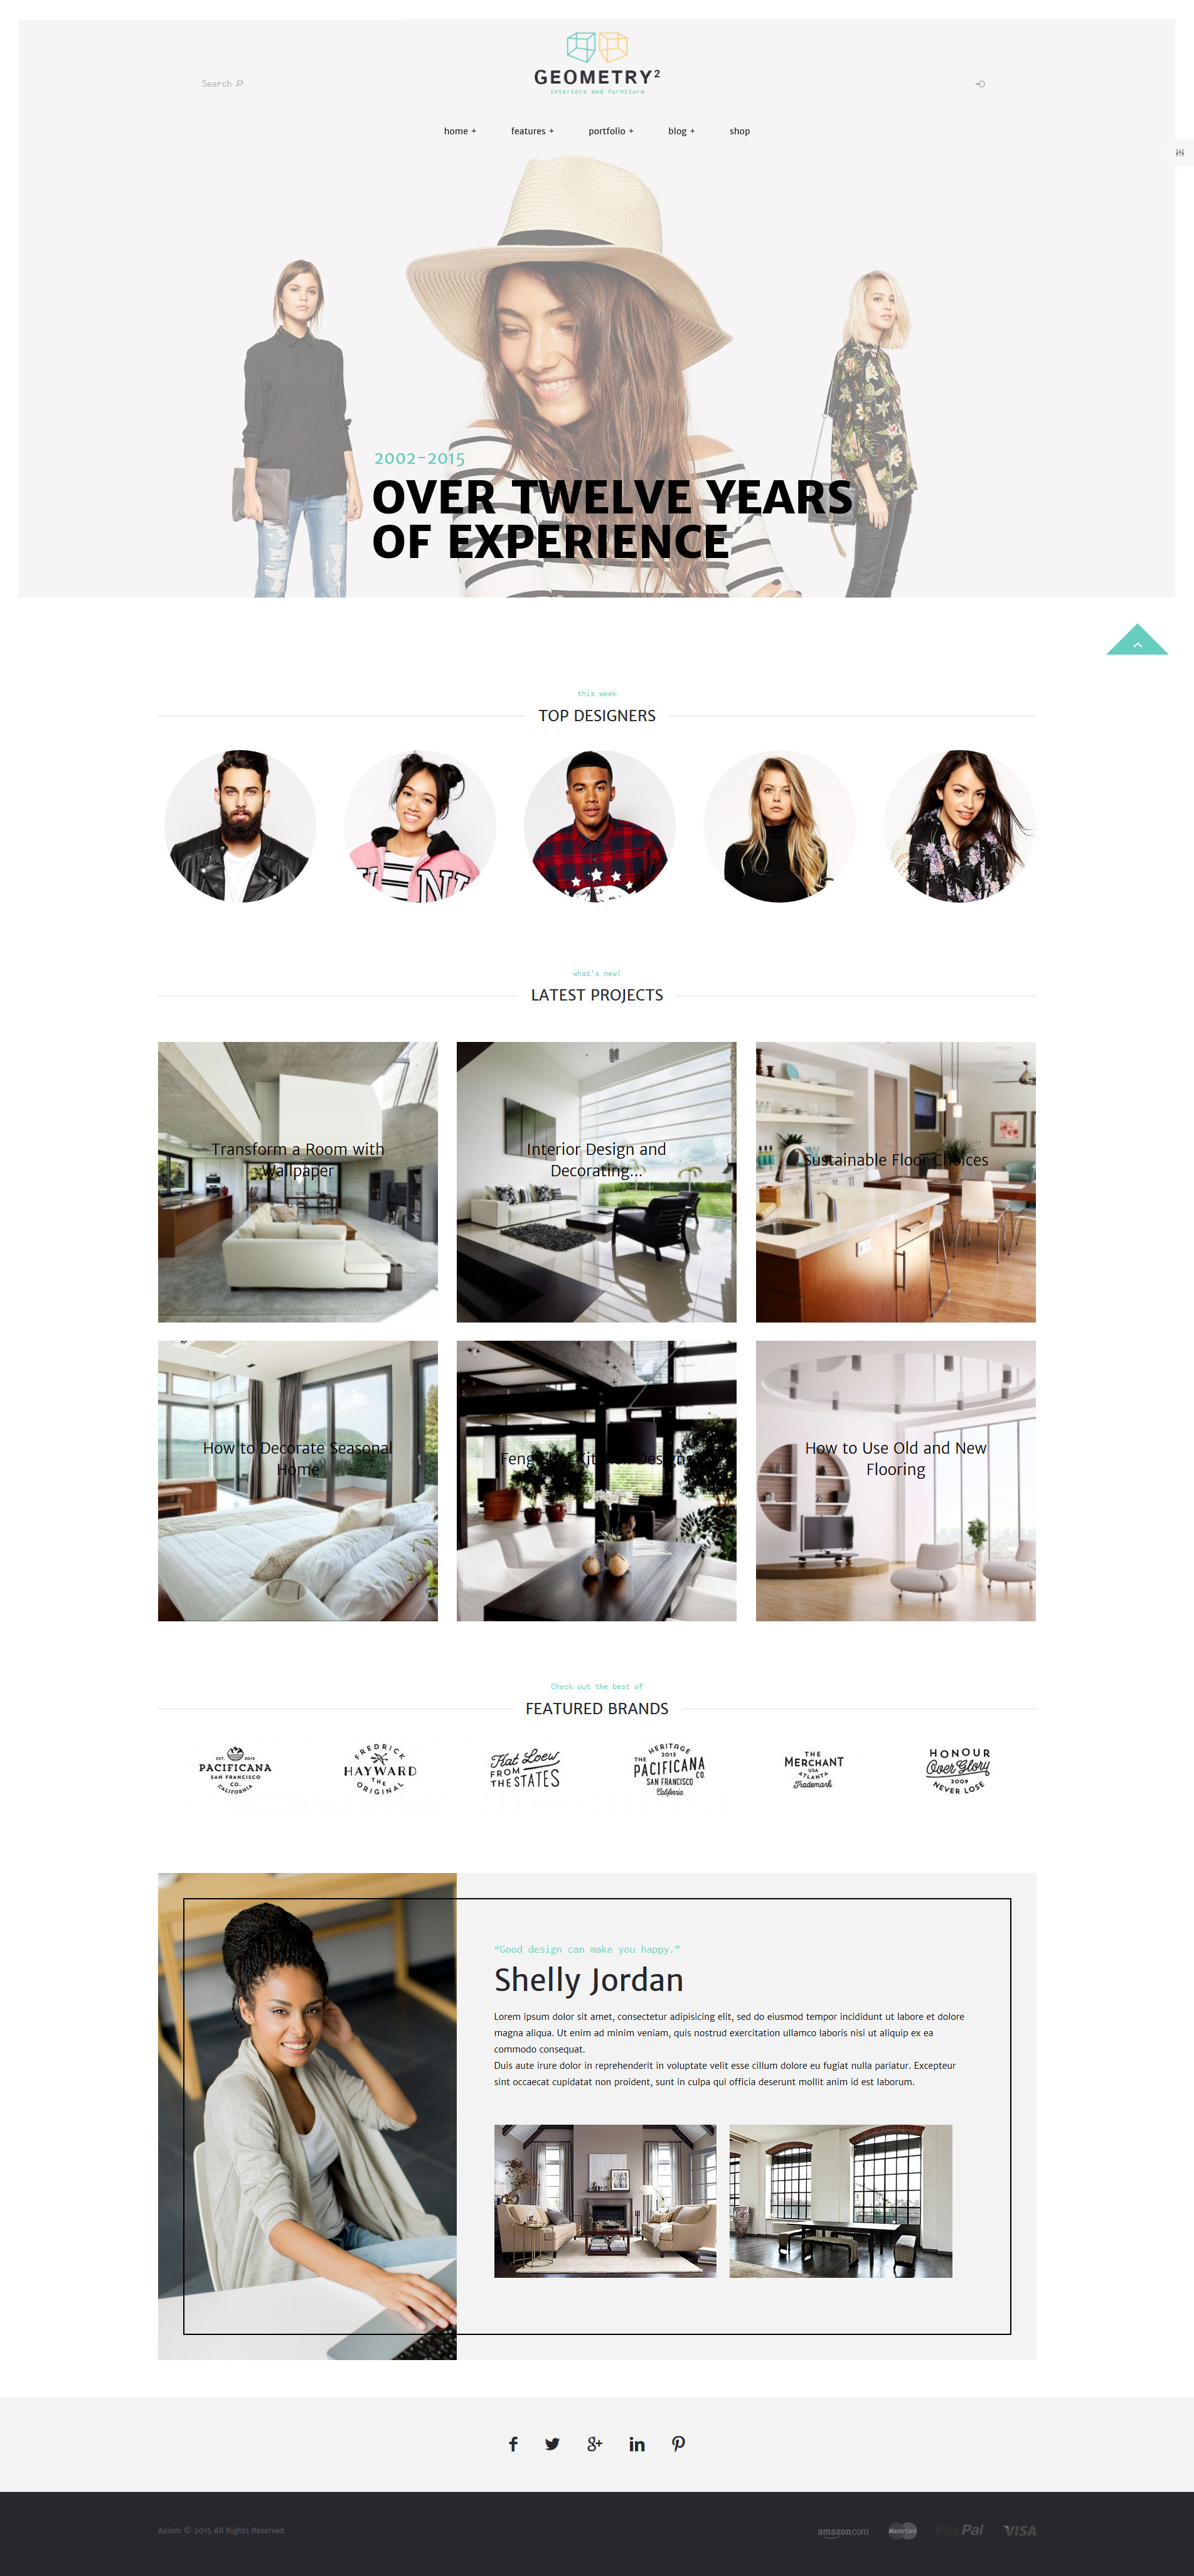 geometry interior design furniture shop by themerex themeforest screen 00 preview jpg screen 01 home interior company jpg